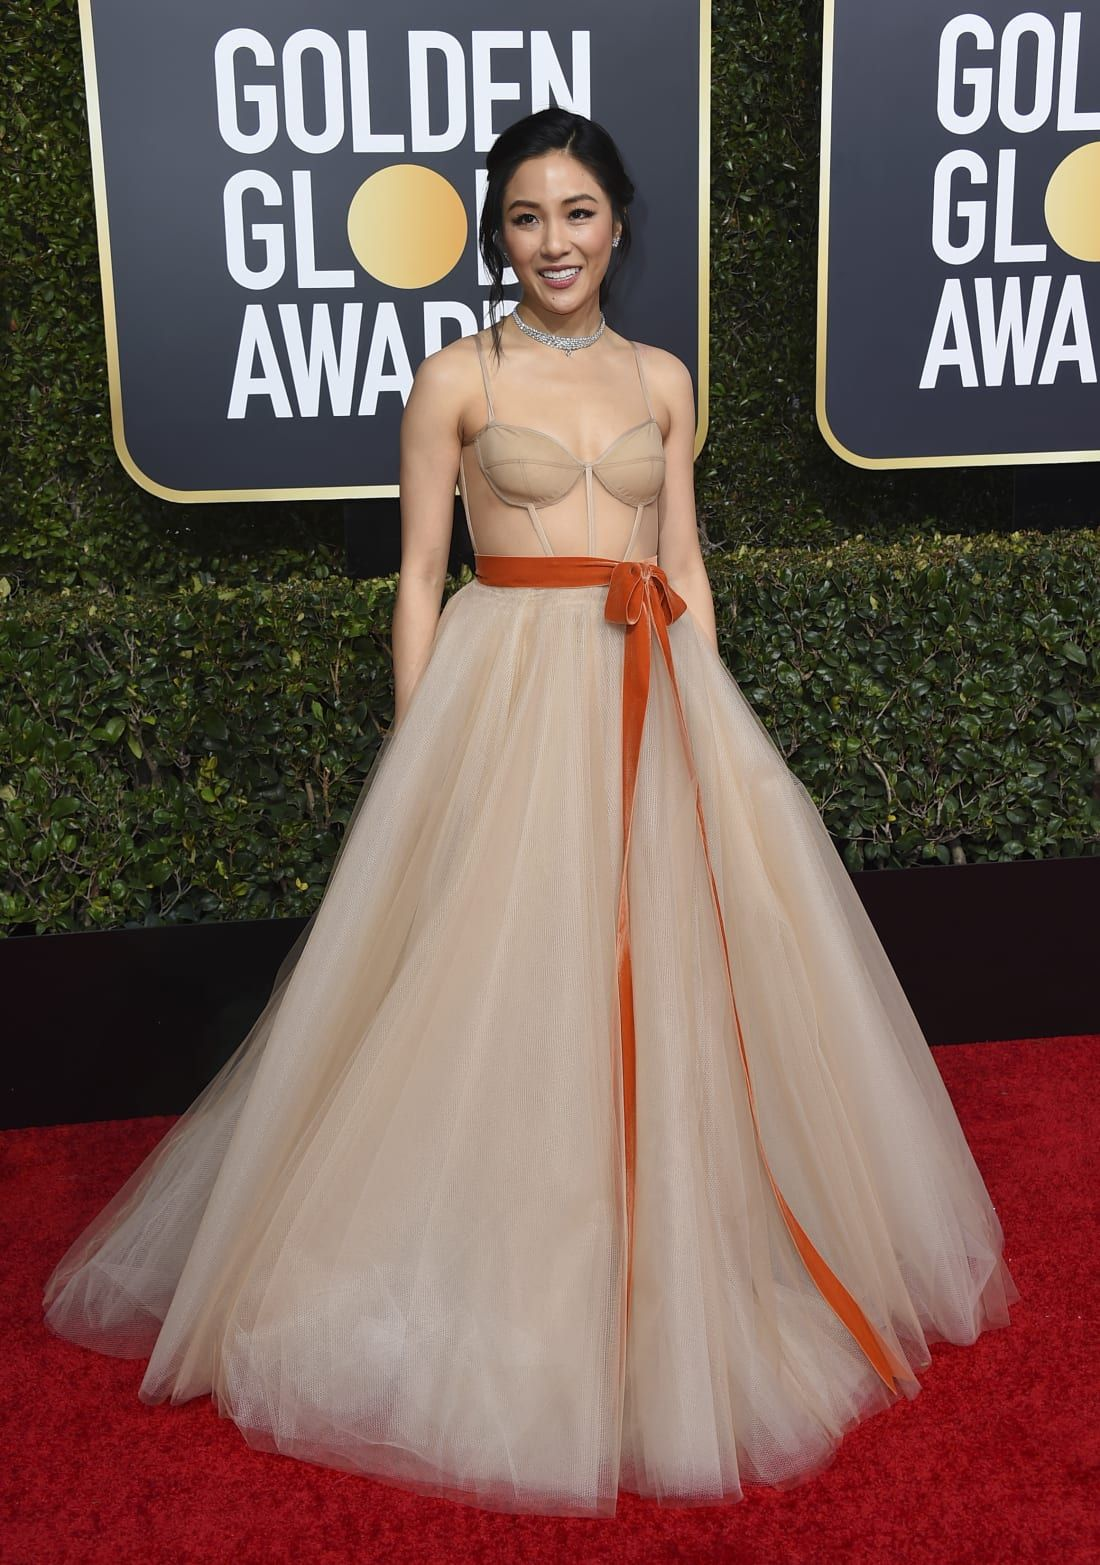 Constance Wu takes the Golden Globes by storm in splendid